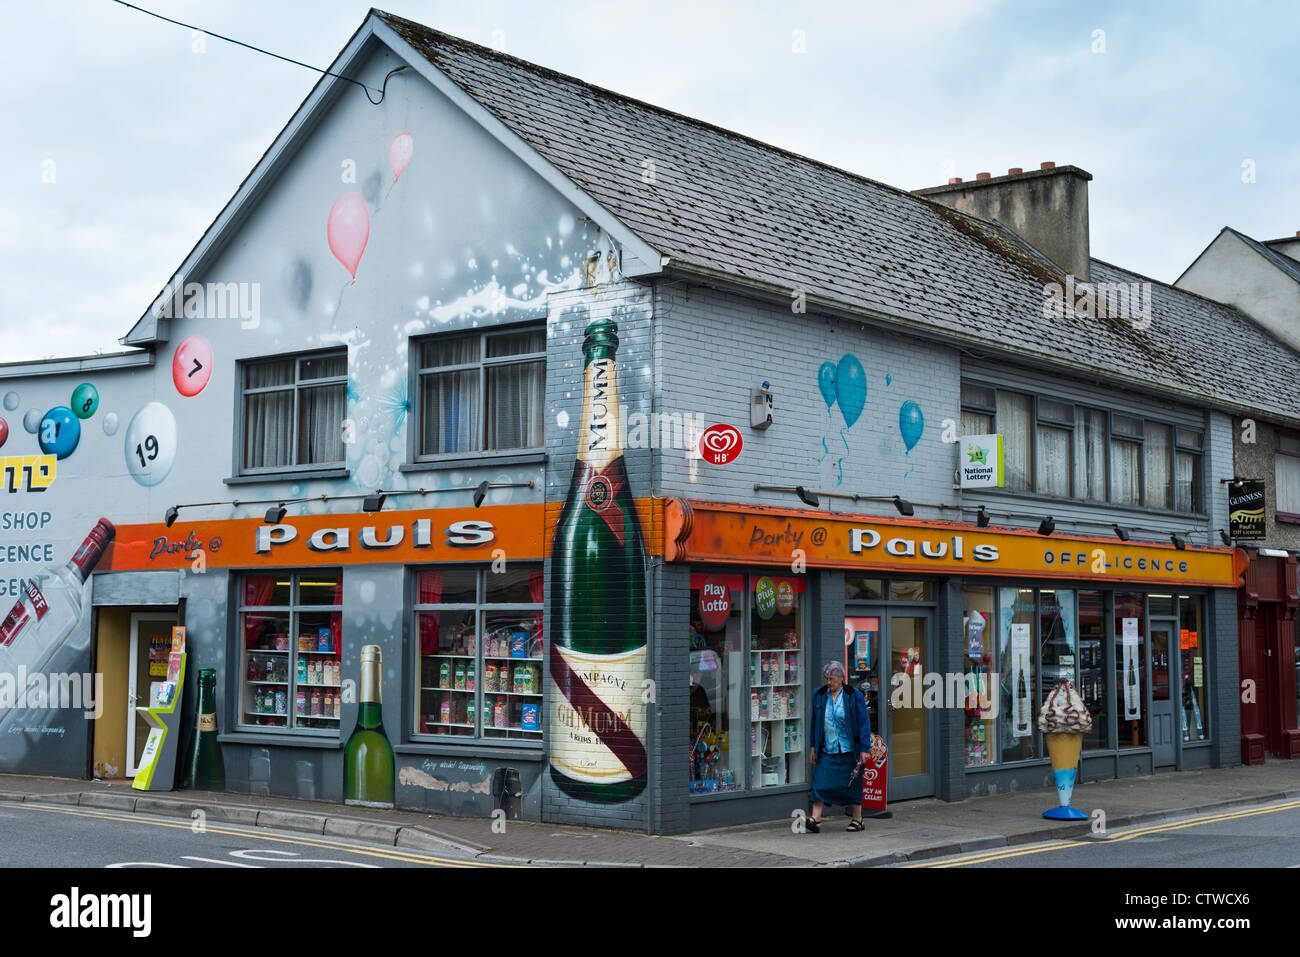 Off-licence in Donegal town, co Donegal, Republic of Ireland. - Stock Image